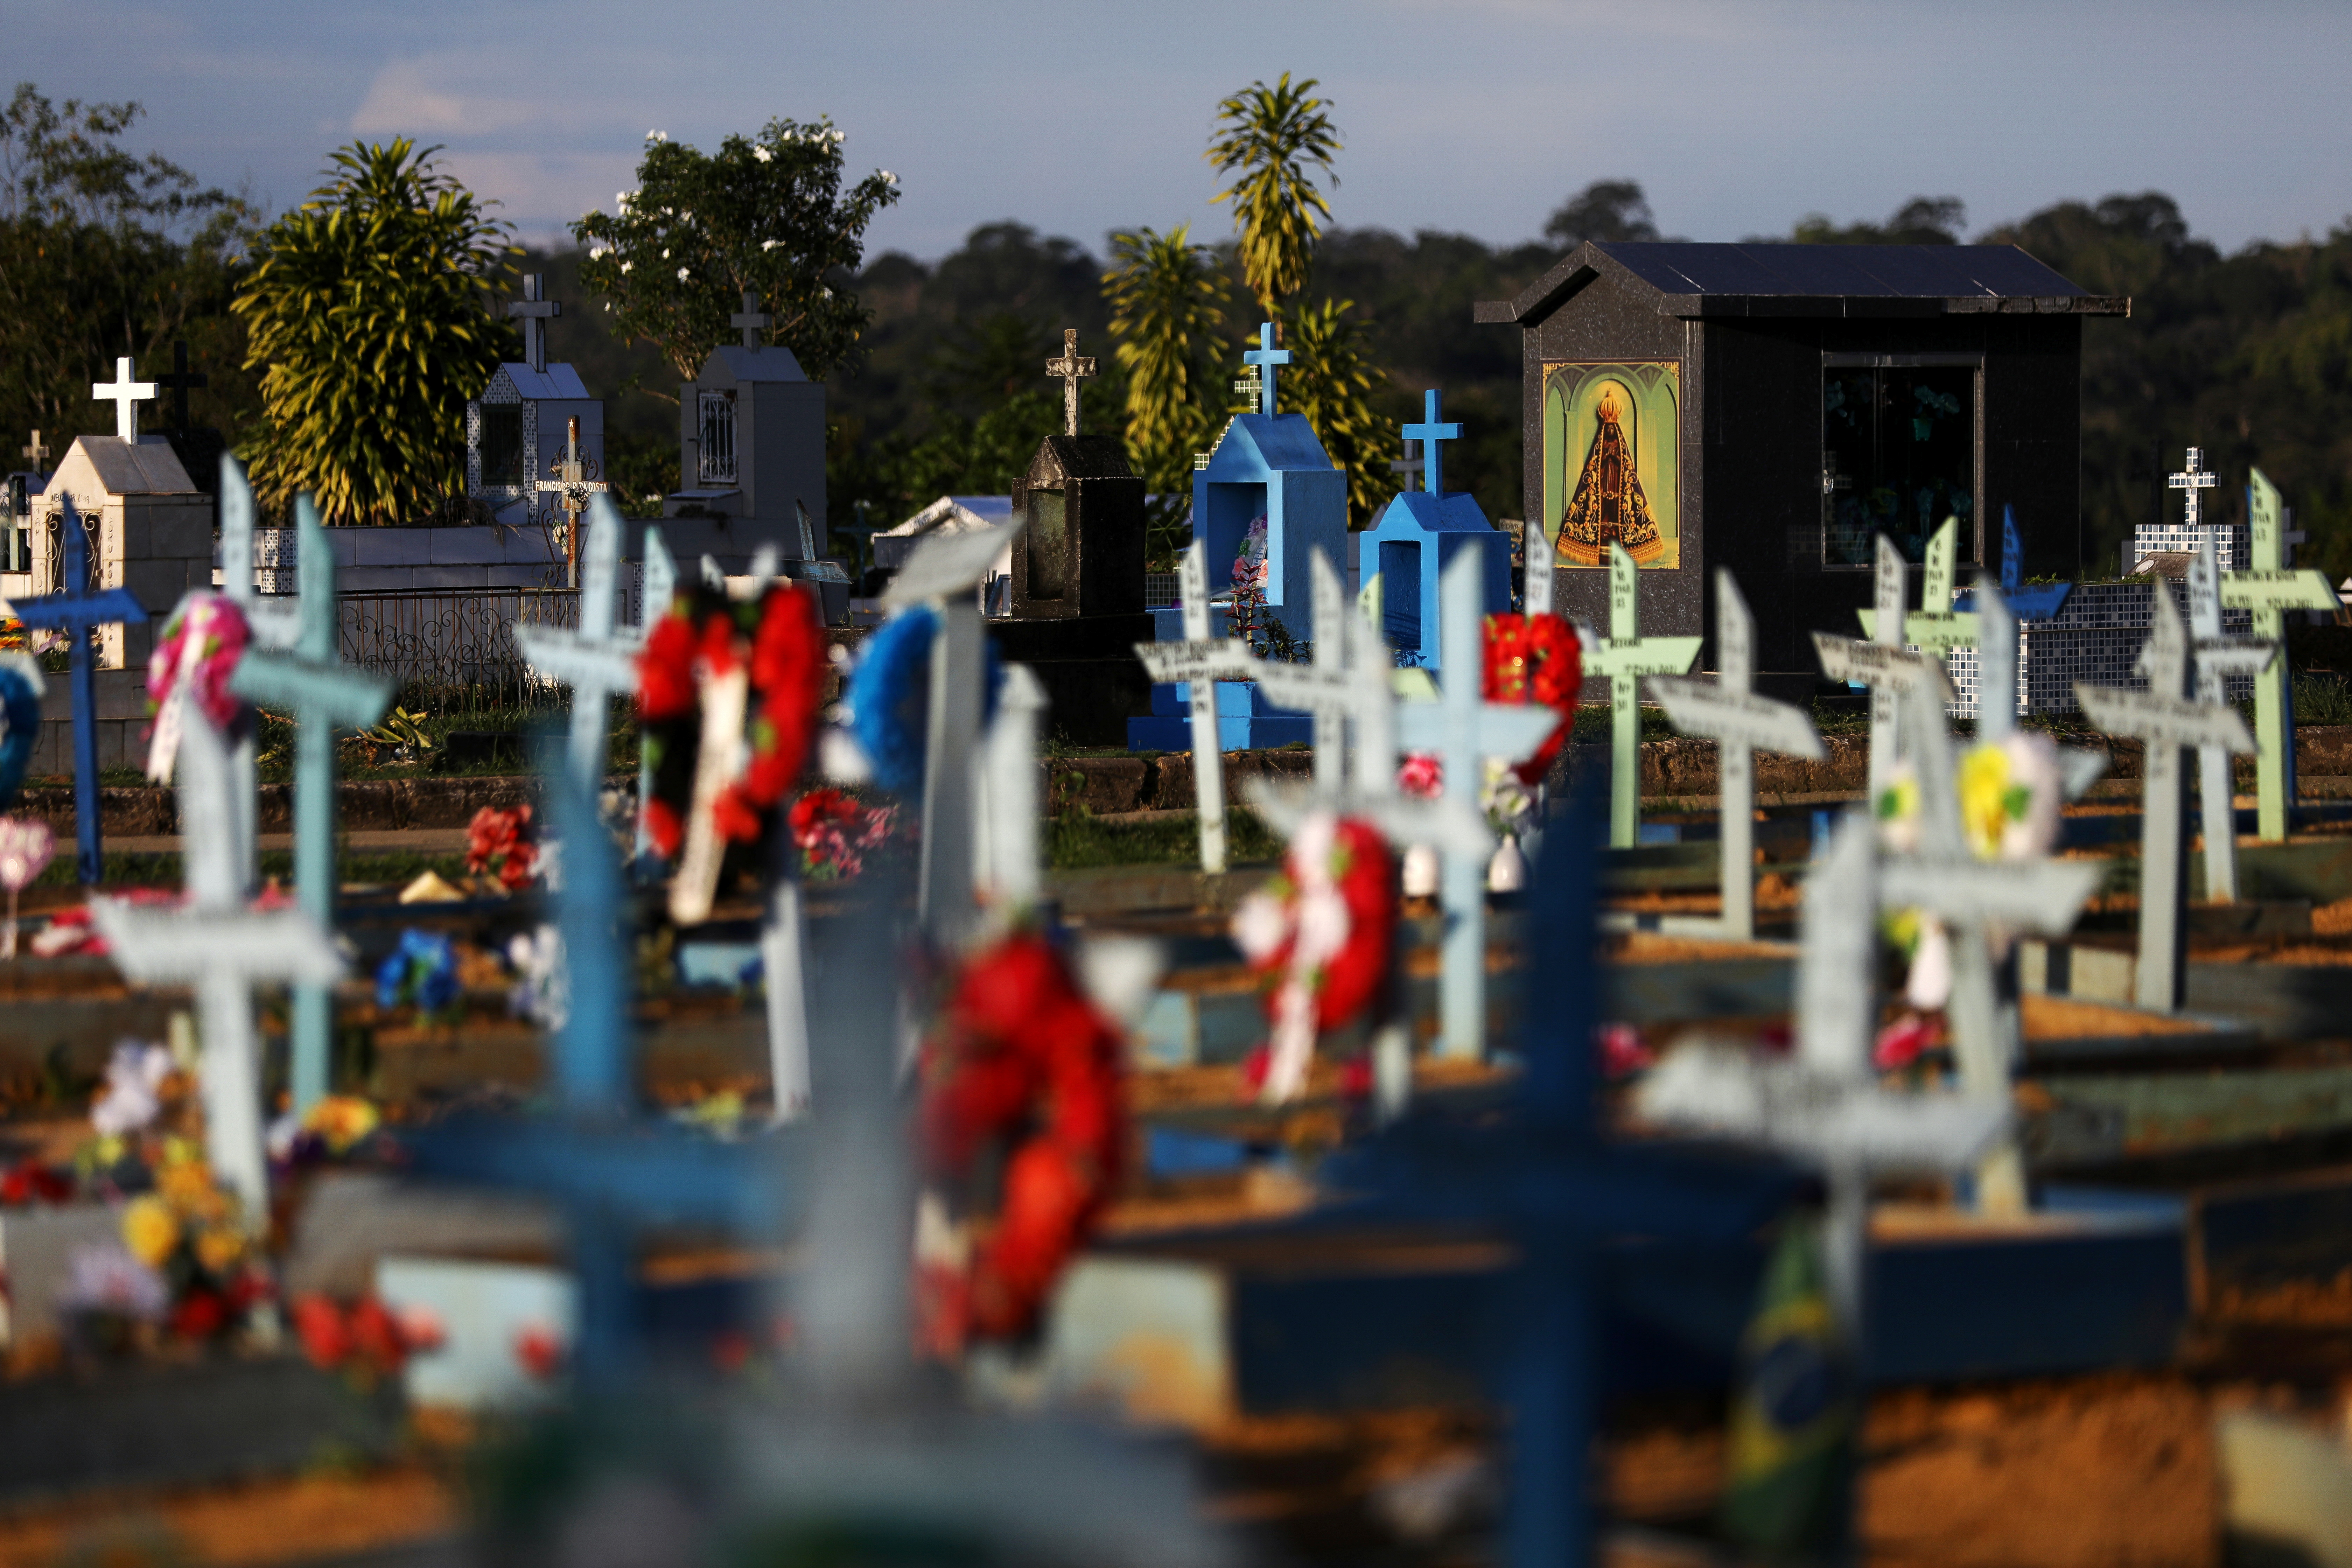 Graves of people who passed away due to the coronavirus disease (COVID-19) are pictured at the Parque Taruma cemetery in Manaus, Brazil May 20, 2021. Picture taken May 20, 2021. REUTERS/Bruno Kelly